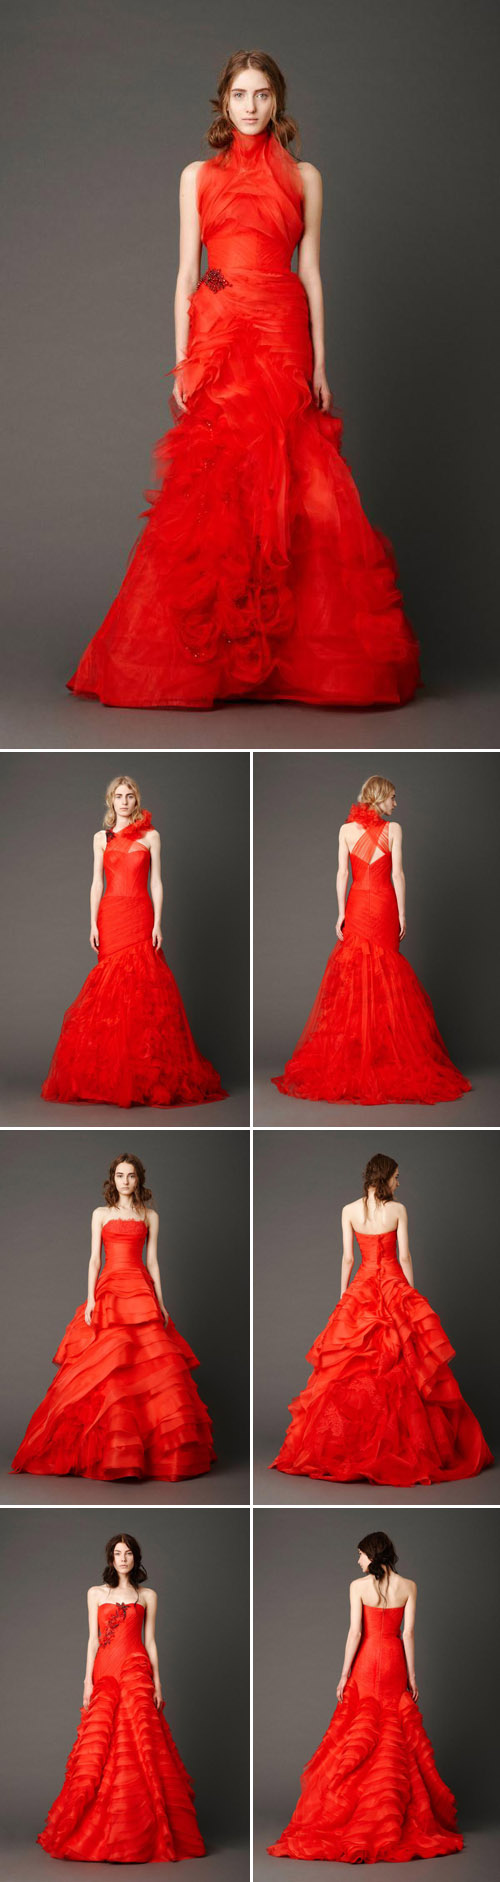 Vera Wang's red wedding dresses for spring 2013